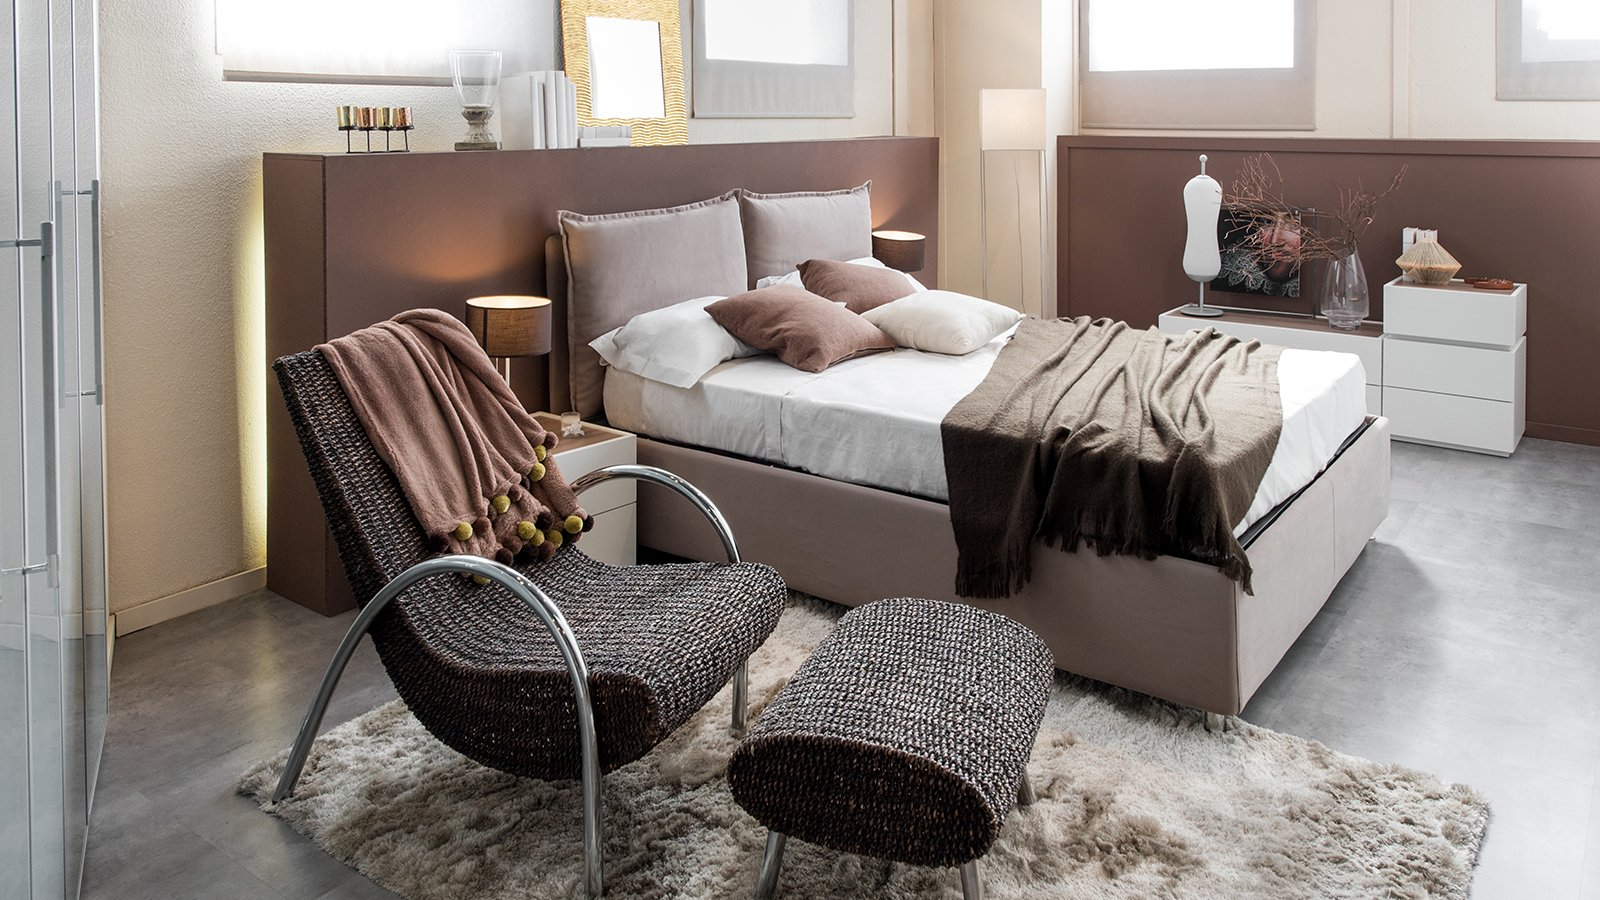 Modern luxury bedroom with recliner chair and double bed with large headboard and cabinets in brown decor